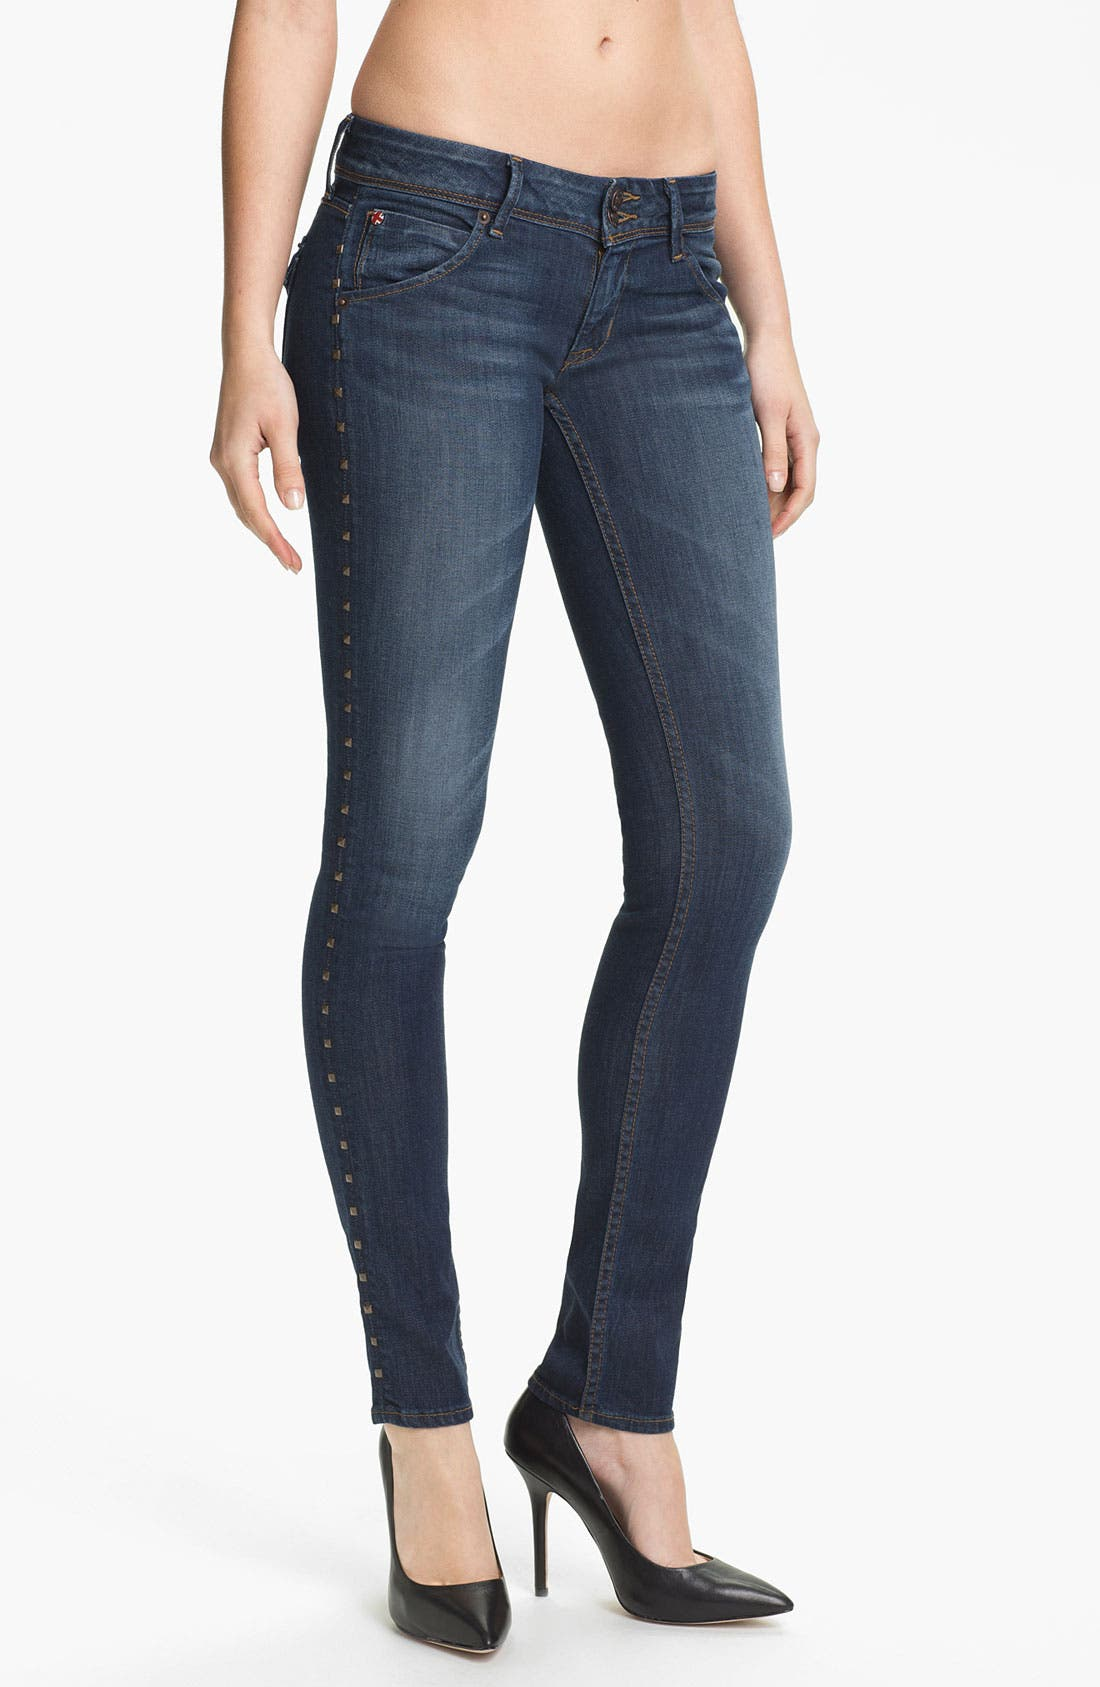 Alternate Image 1 Selected - Hudson Jeans 'Collin' Skinny Stretch Jeans (Bennett)